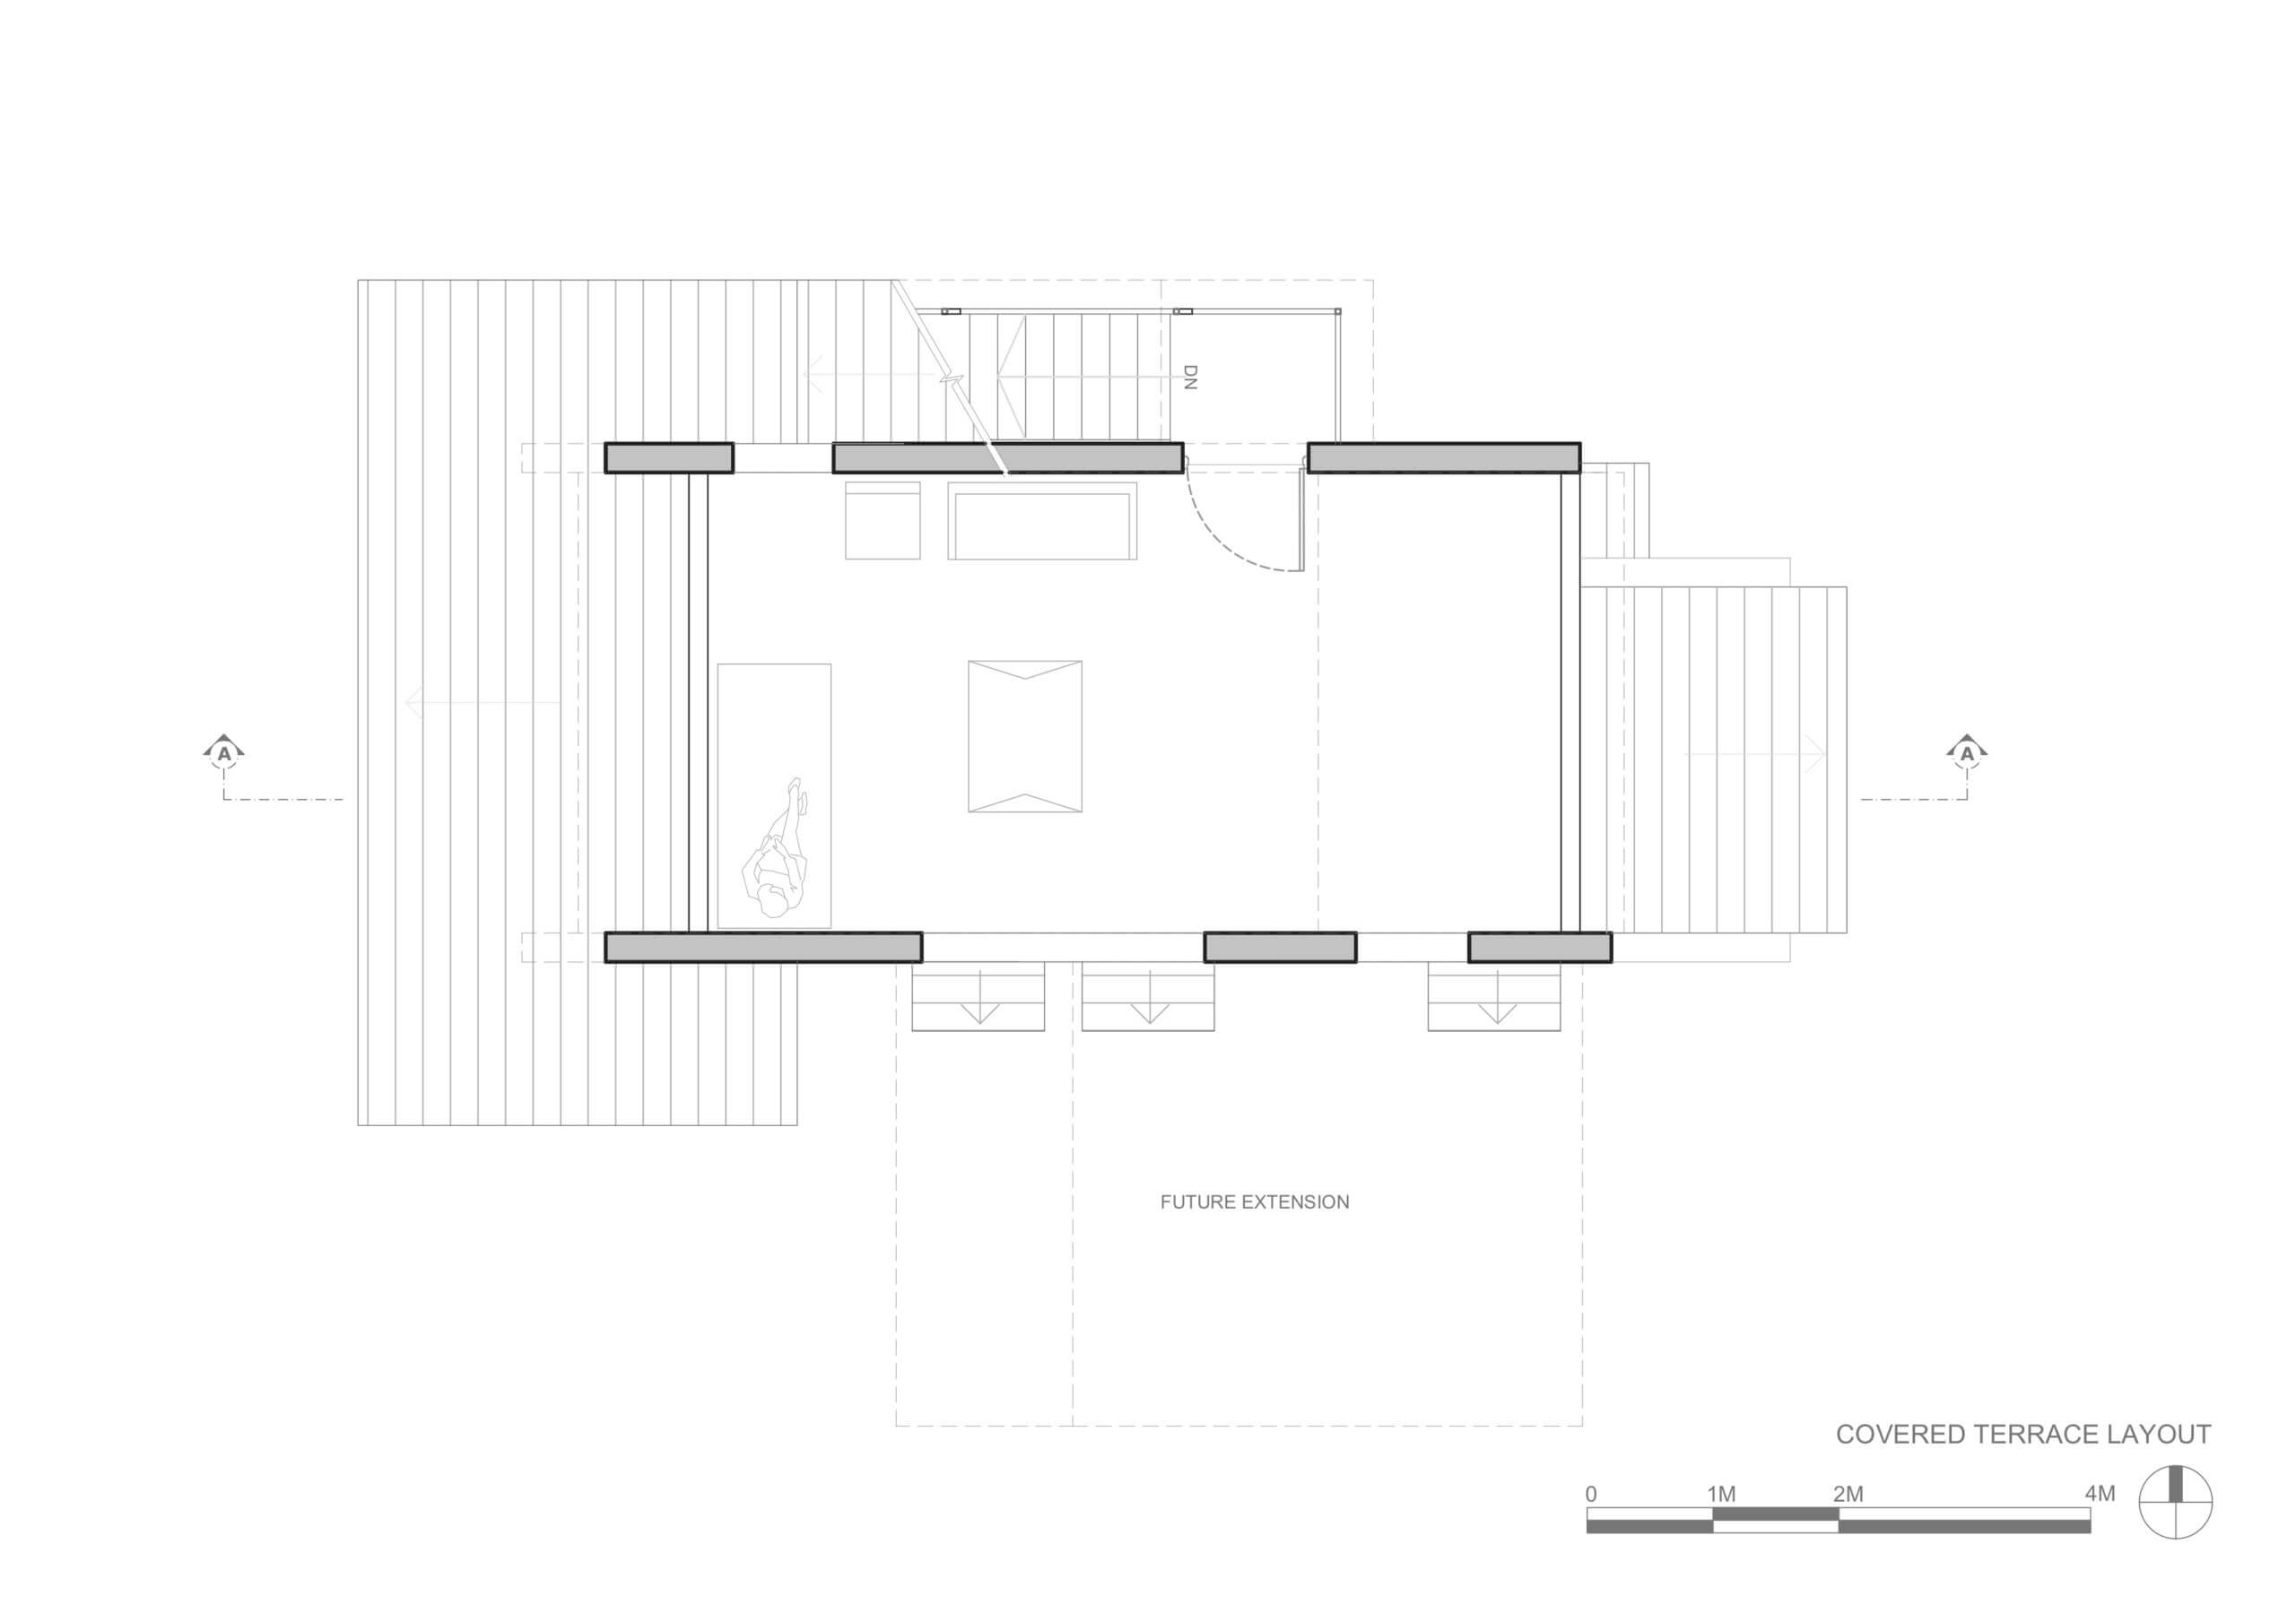 Covered terrace plan